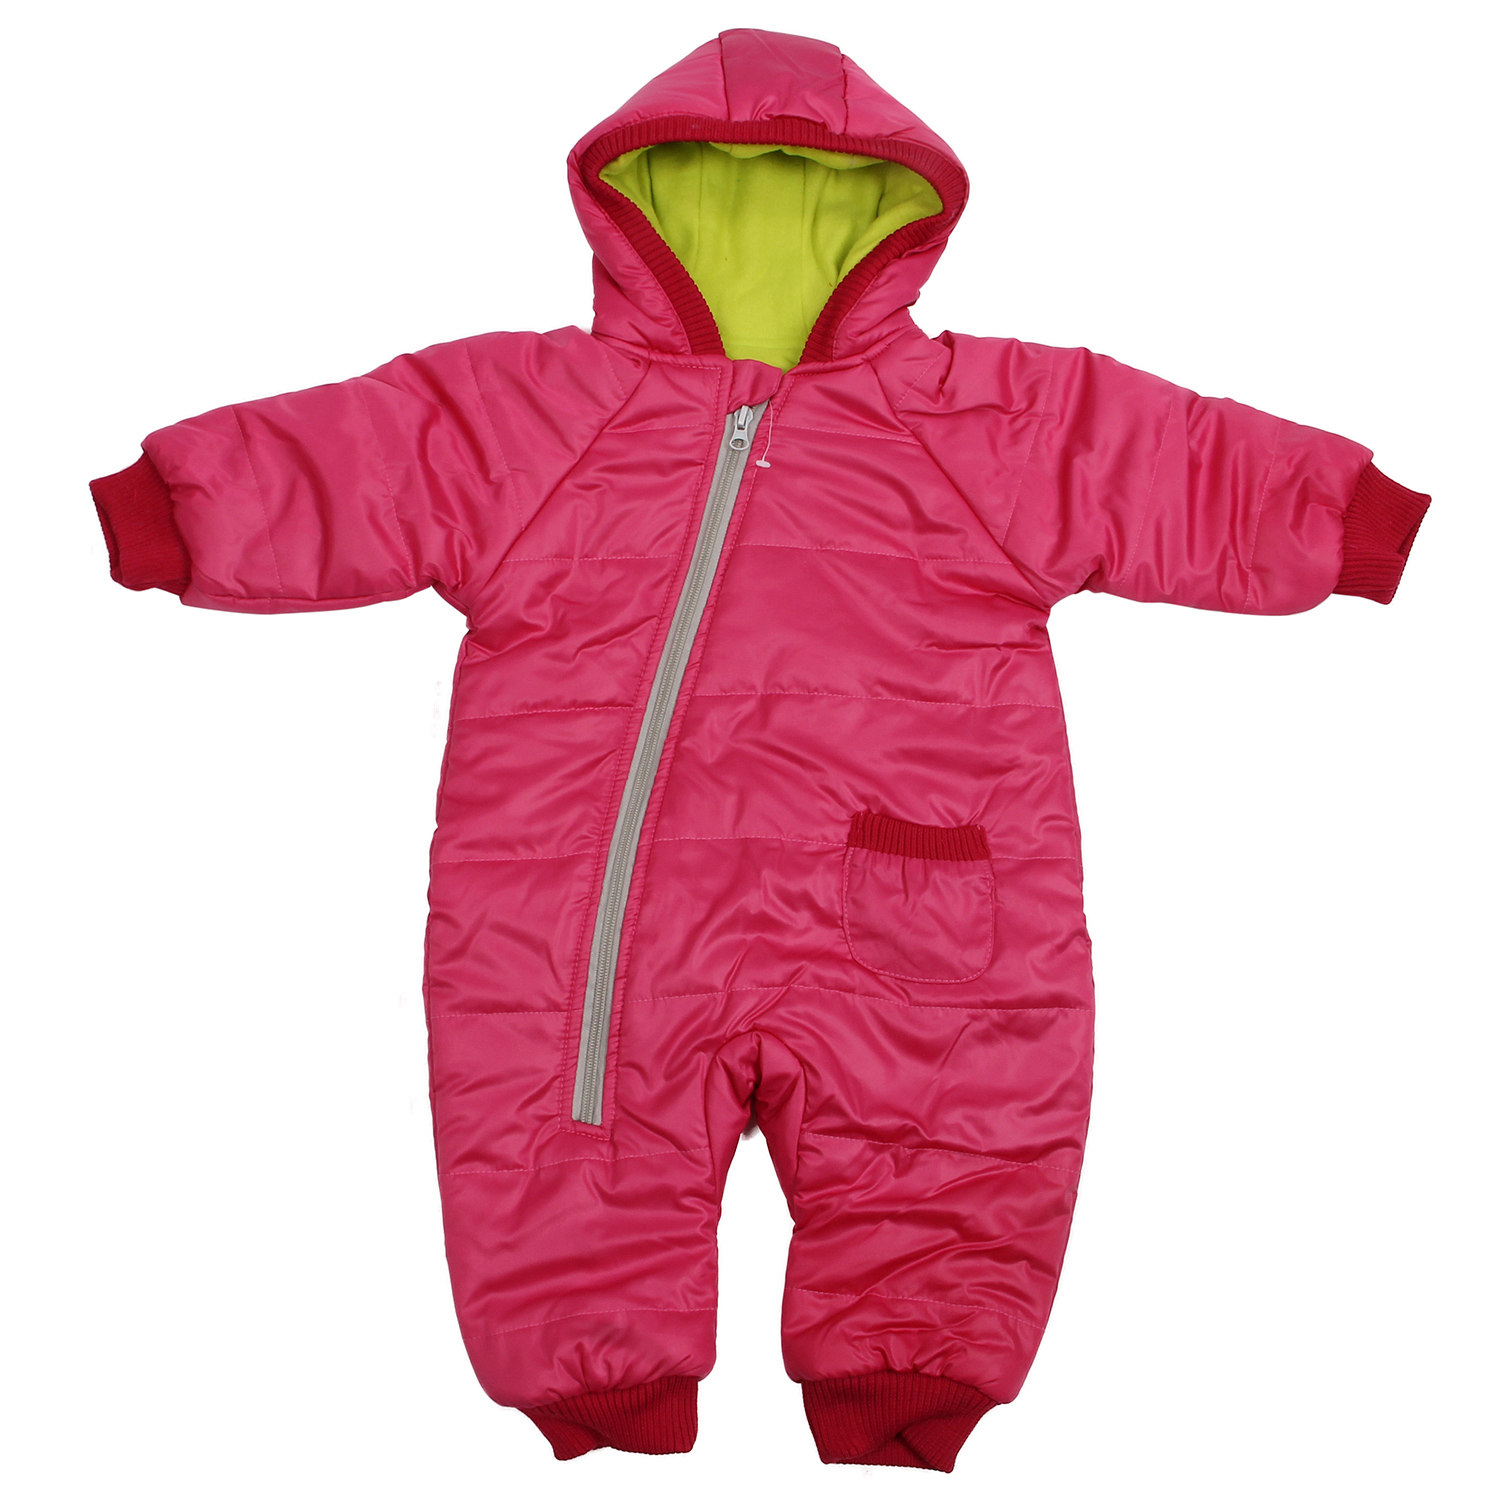 Winter Baby Girl Boy Kid Toddler Snowsuit Coat Jacket Jumper Outwear Clothes 1PC rose red 1-2 Years